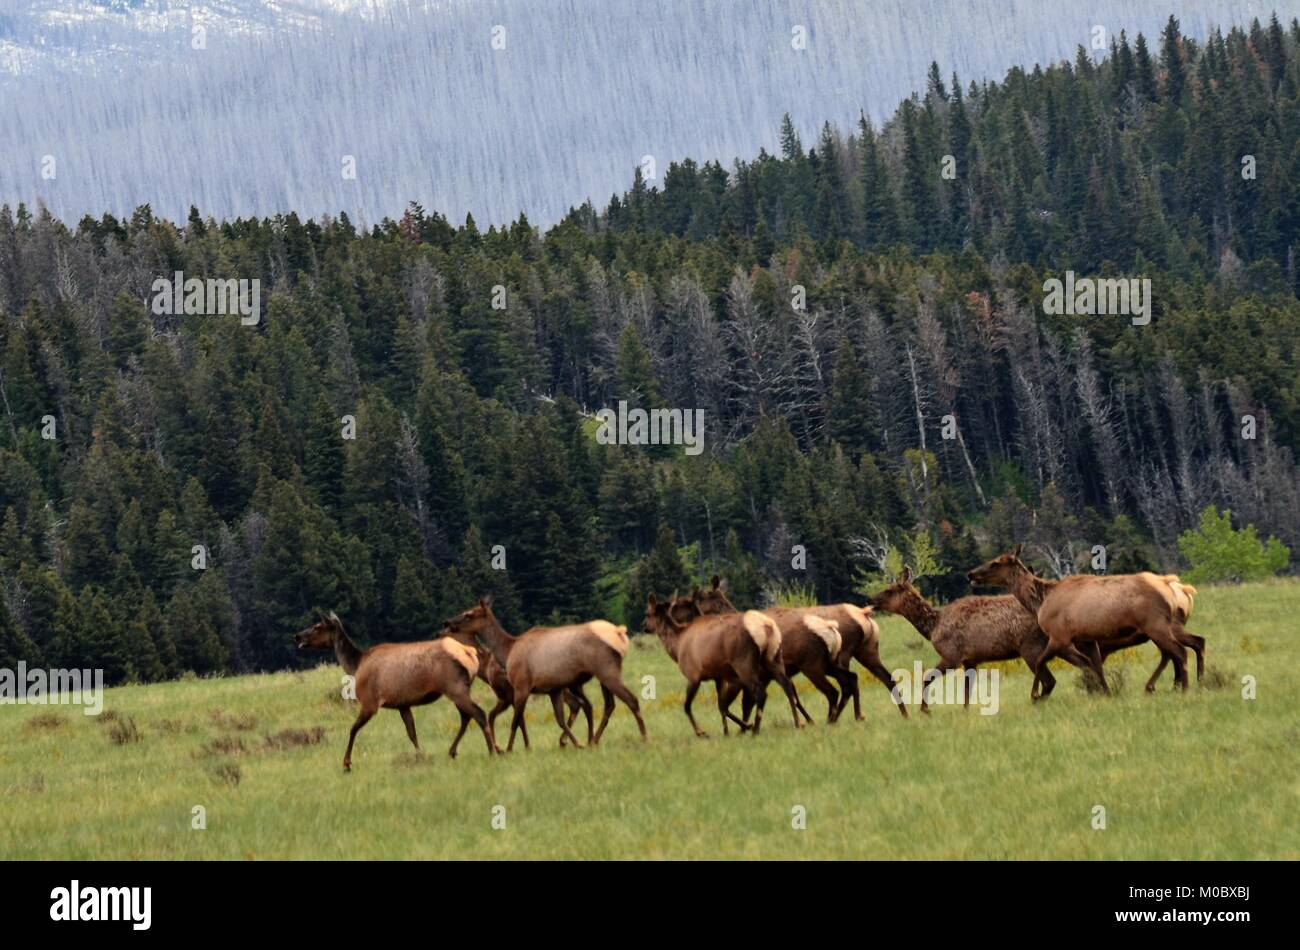 A herd of elk move swiftly across an open field, looking for food and shelter before evening - Stock Image